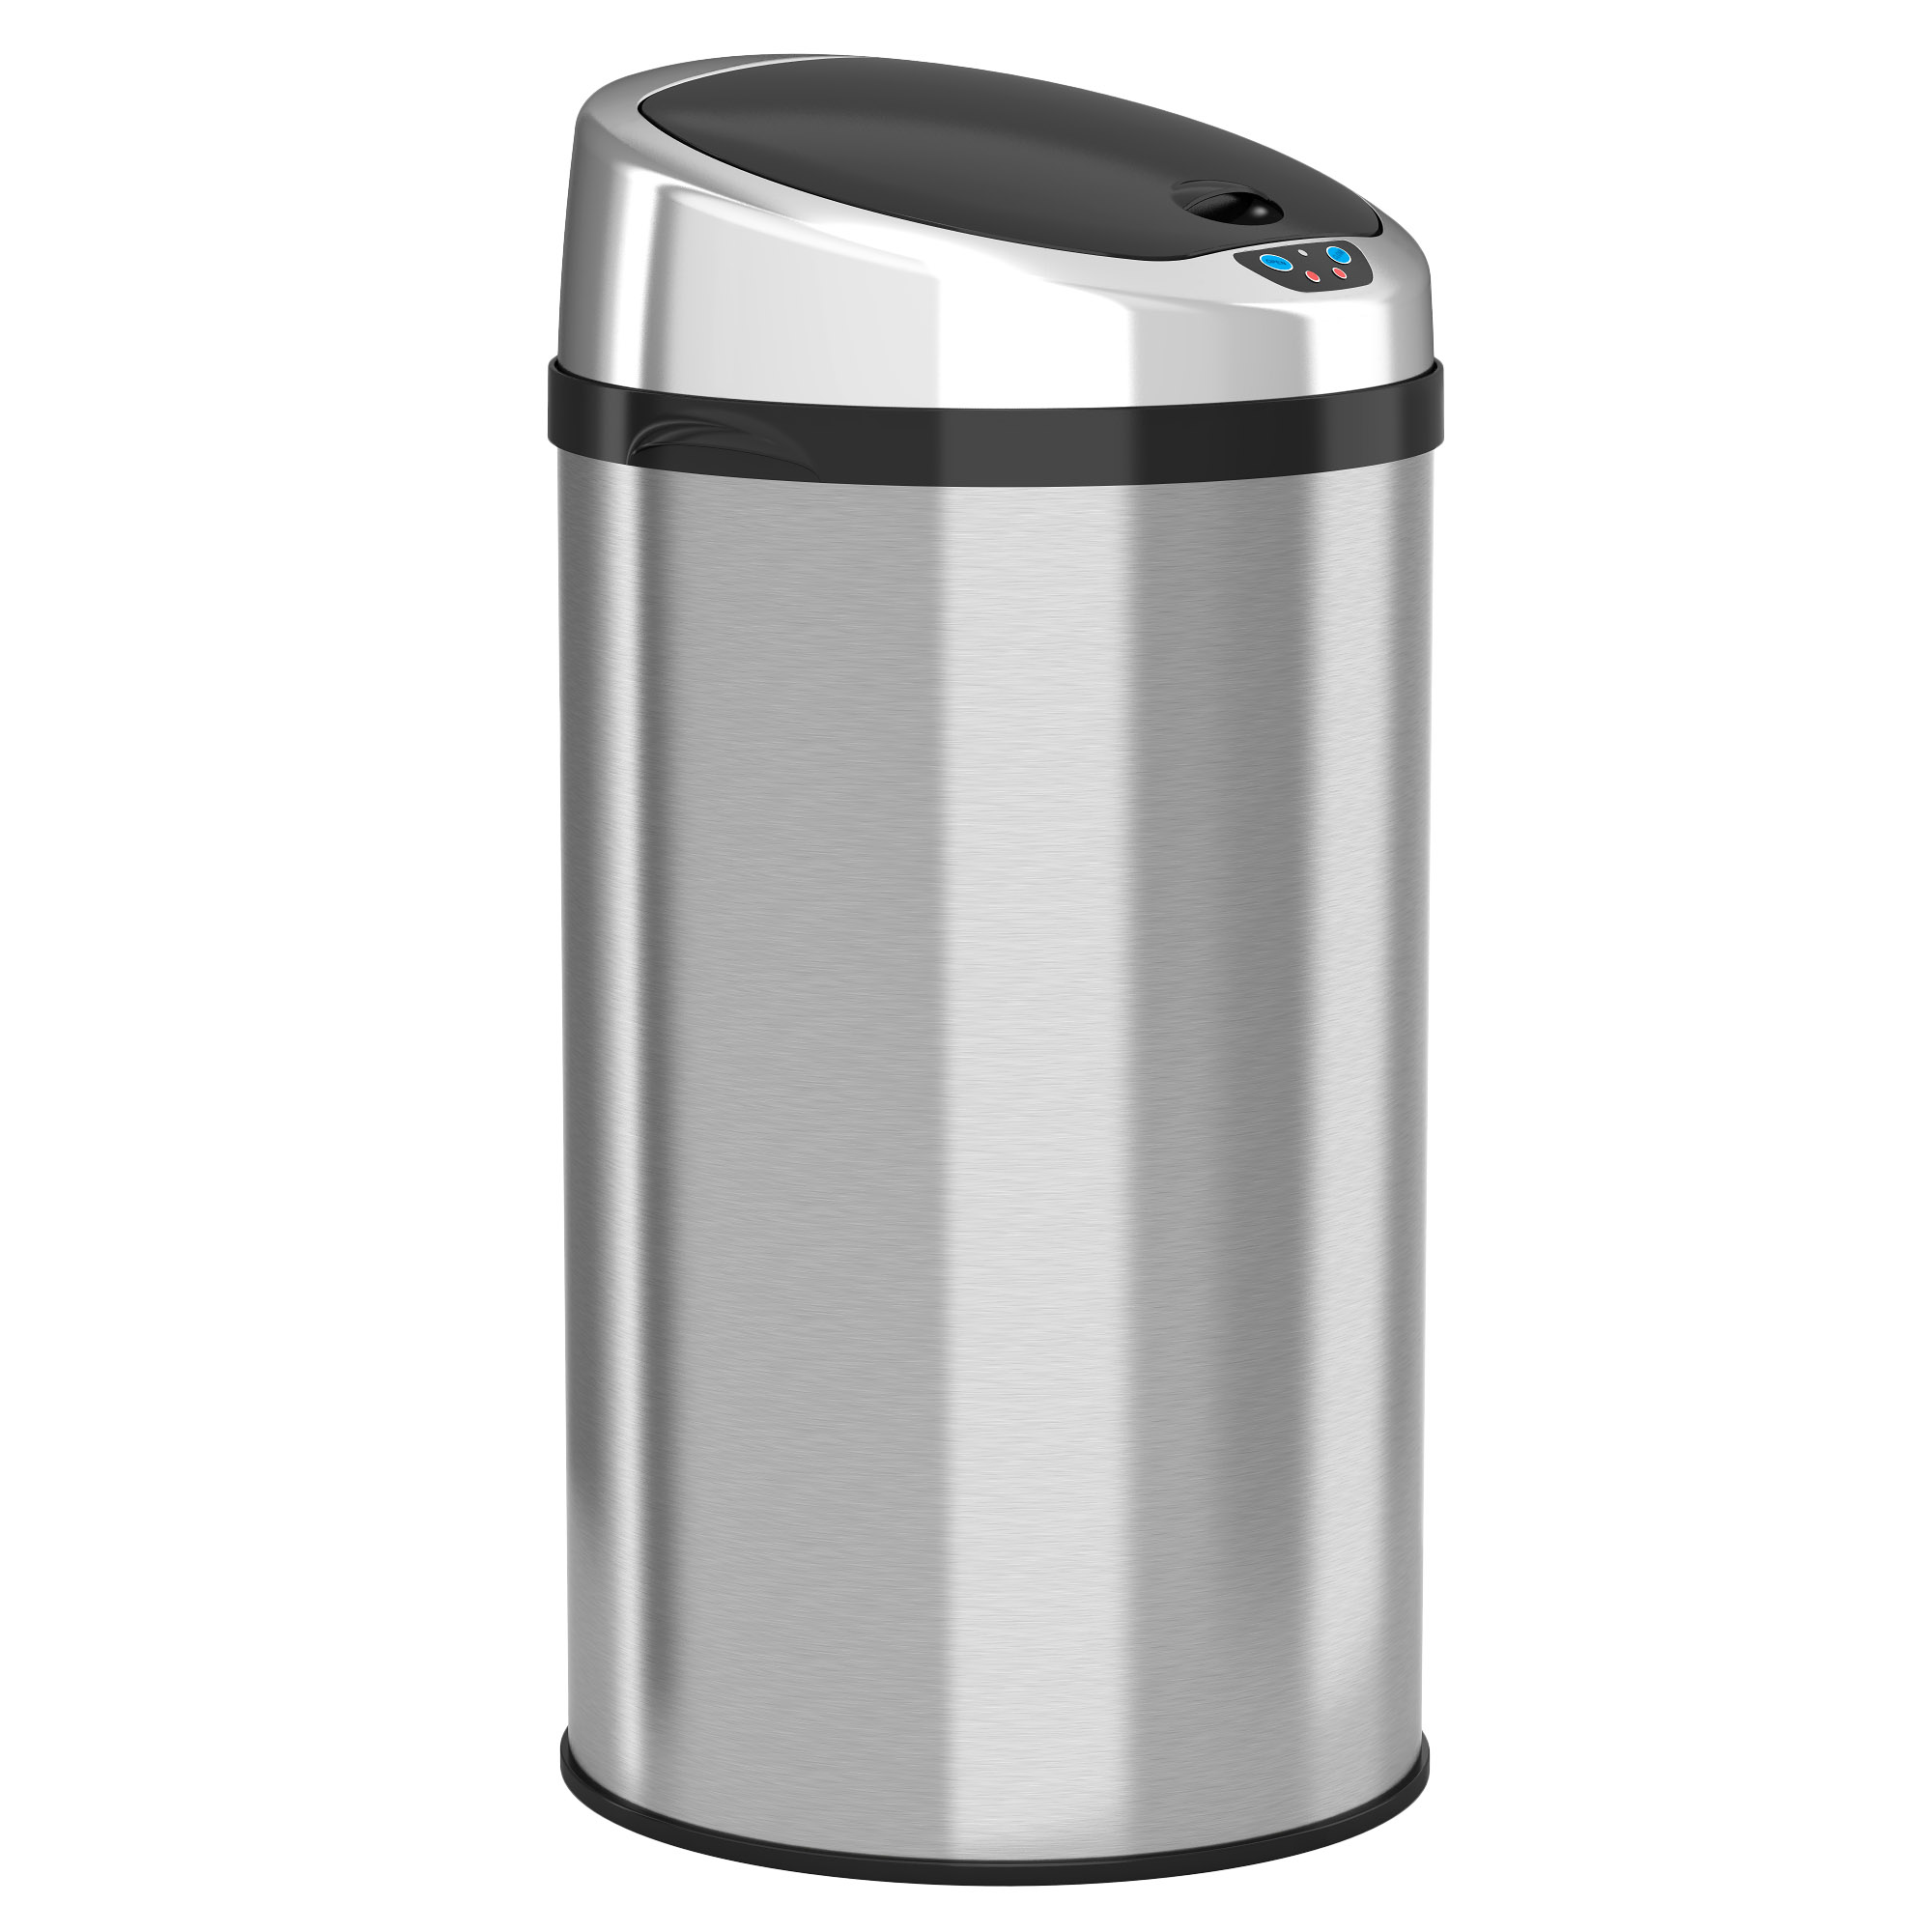 iTouchless 8 Gallon Automatic Trash Can with Infrared-Sensor Lid, Stainless Steel